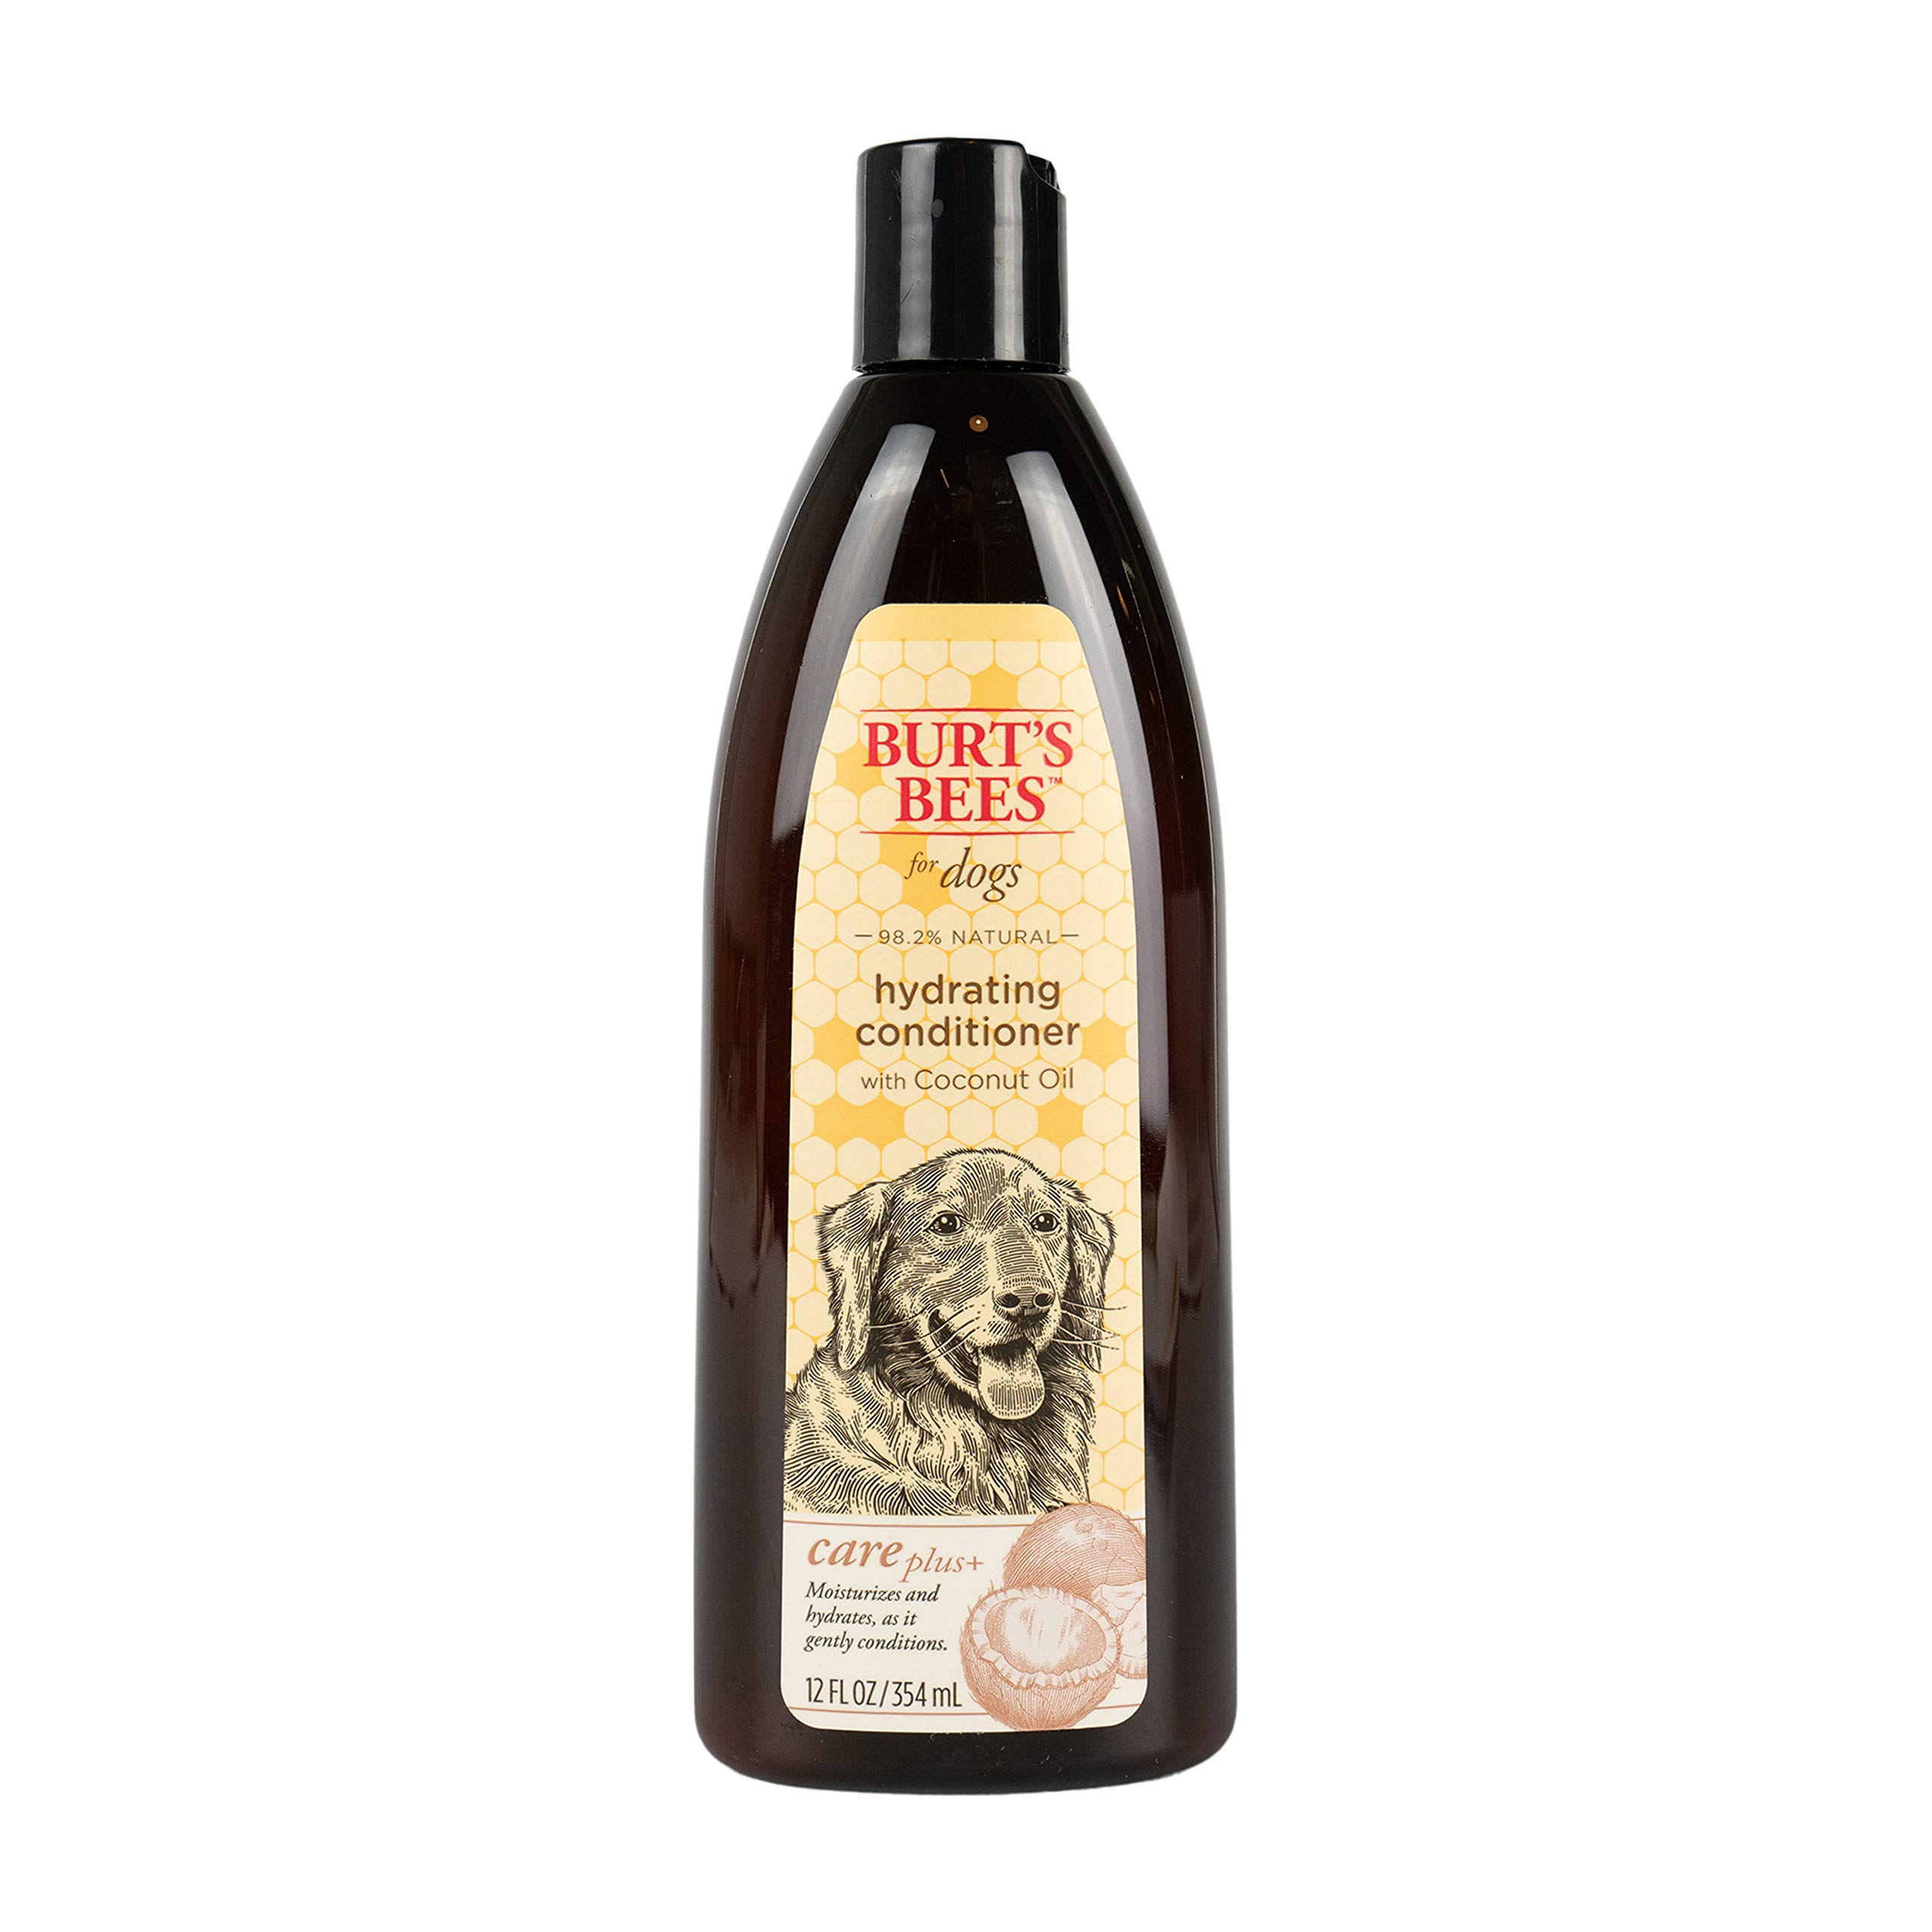 Burt's Bees For Dogs Care Plus Natural Hydrating Conditioner With Coconut Oil | Dog Conditioner, 12 Ounces